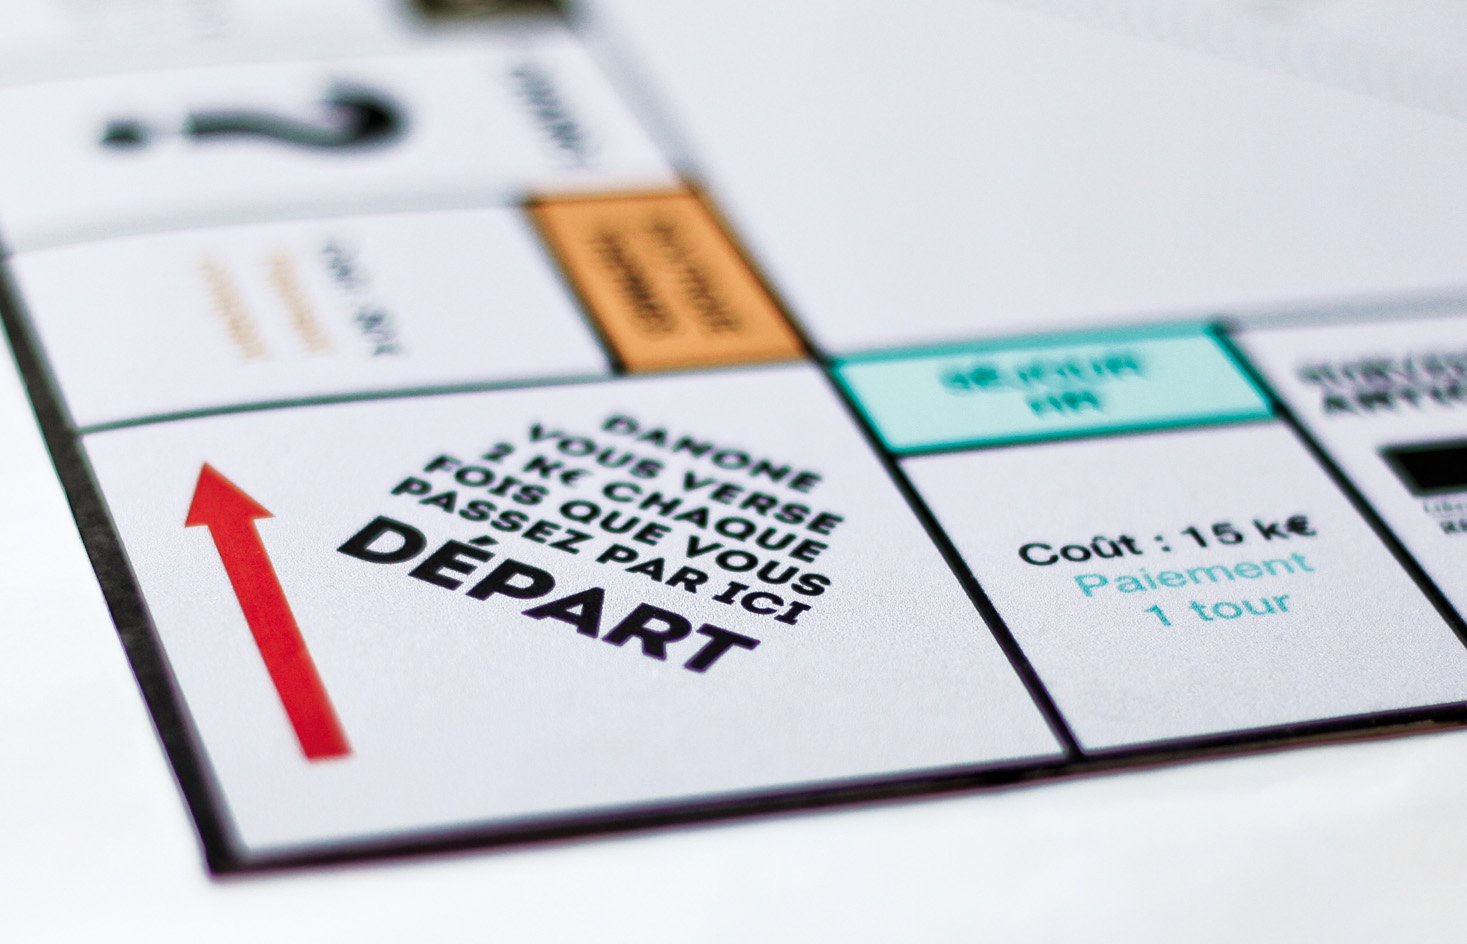 Work_17_Evianopoly_6